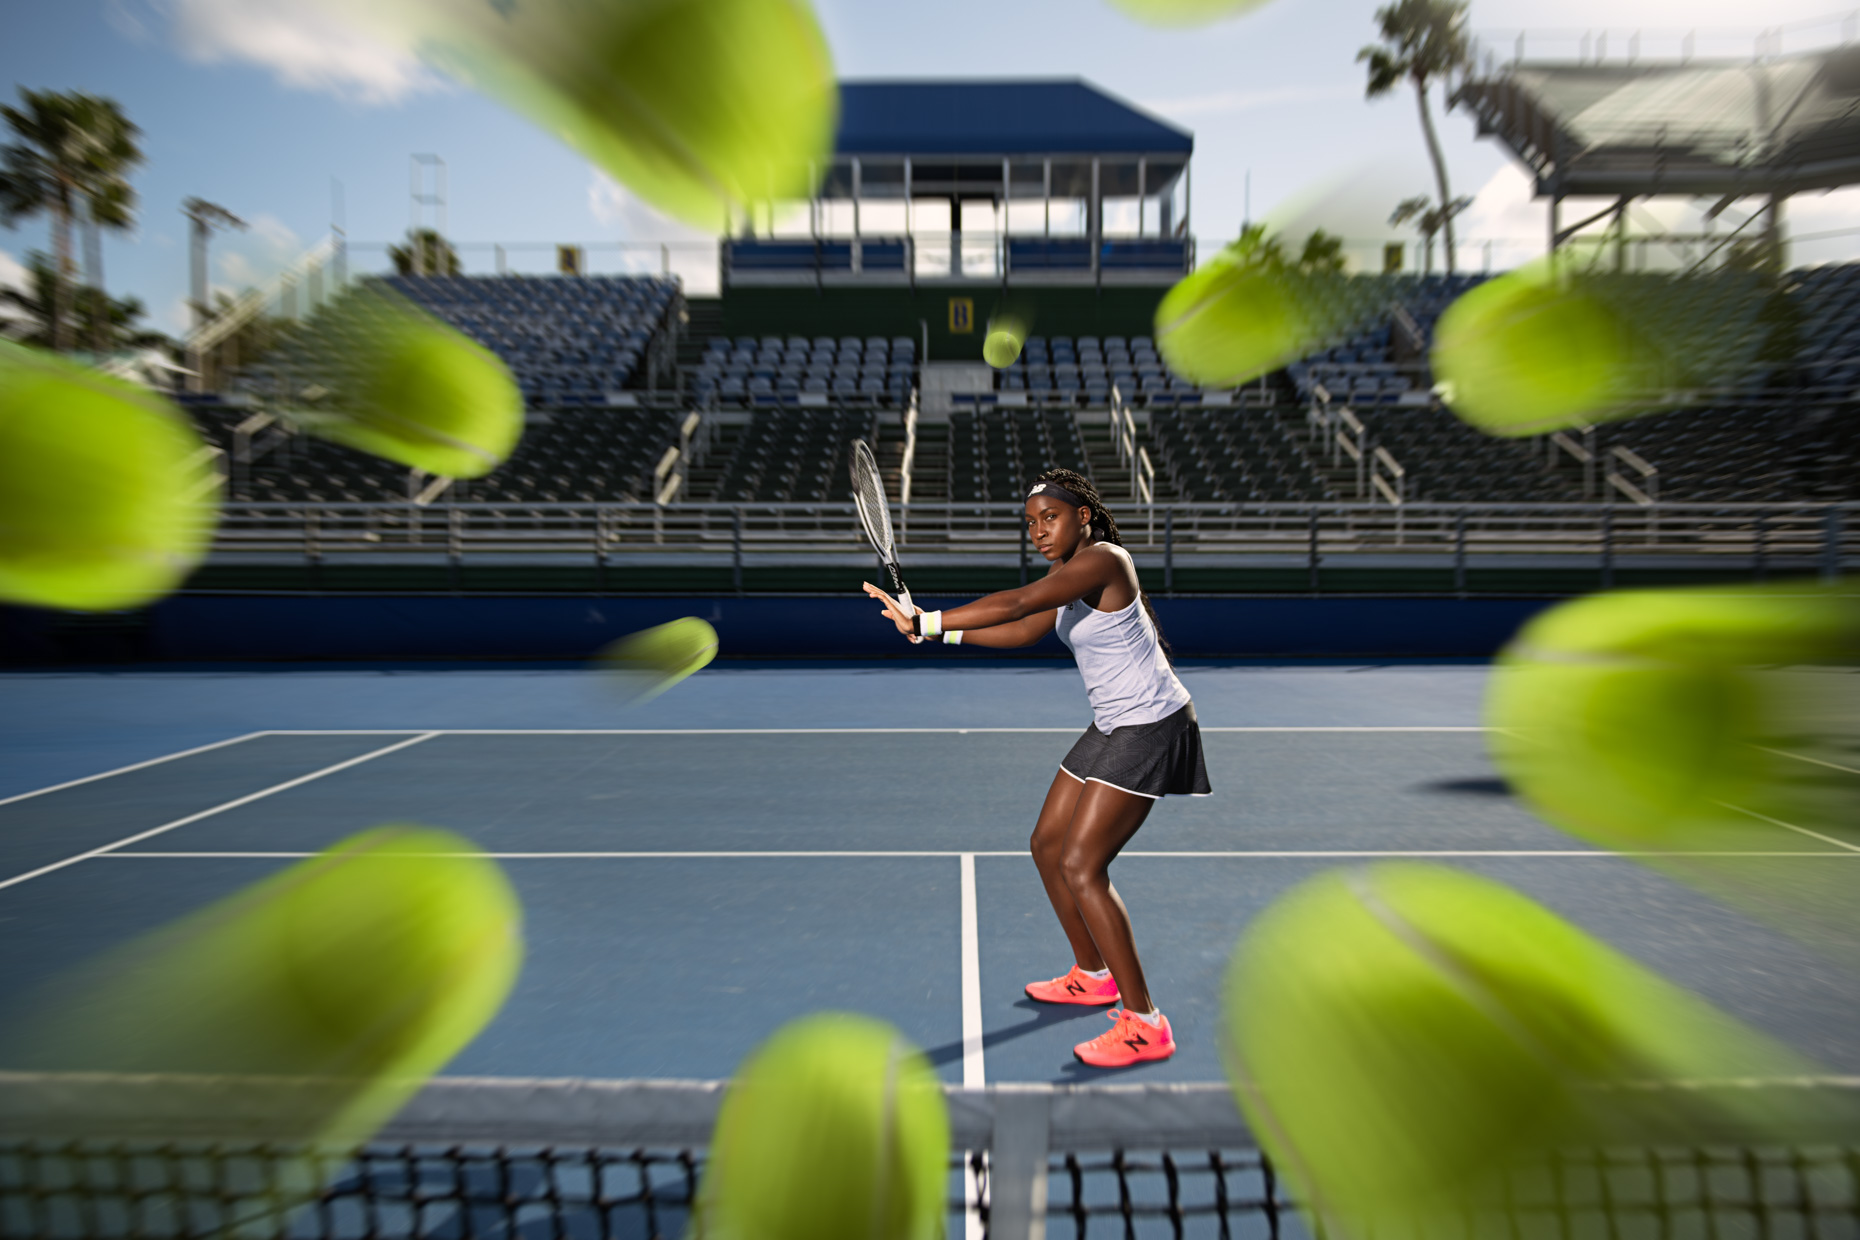 Coco Gauff - Tennis photoshoot - Delray Beach, FL - US Open - New Balance 2